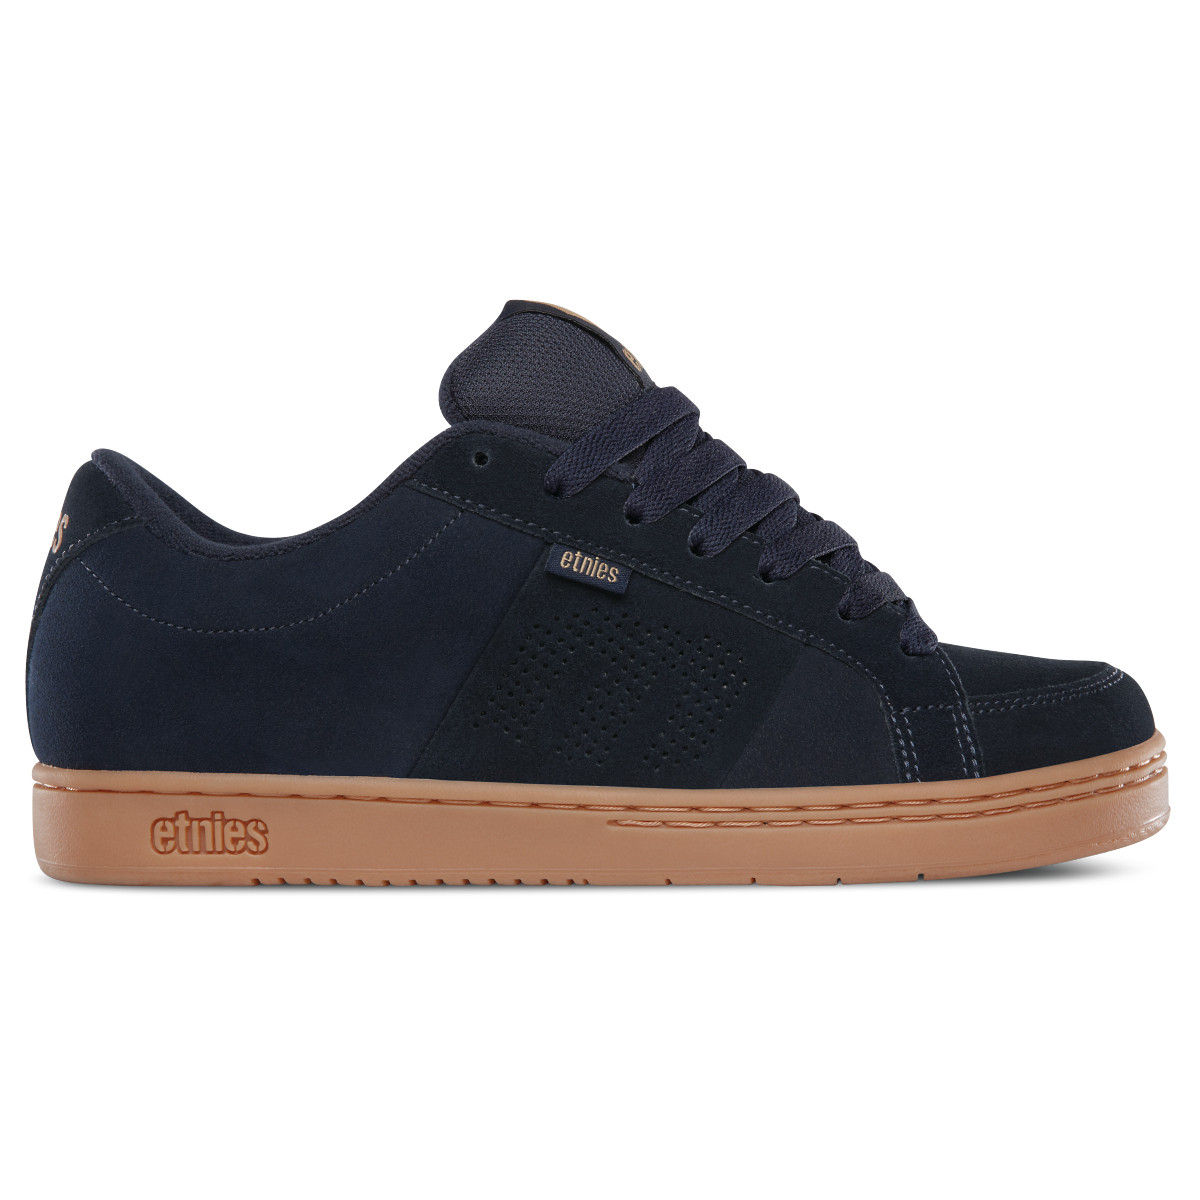 168173e16e ... ETNIES Skateboard Shoes KINGPIN NAVY GUM. Image 1. Click to enlarge